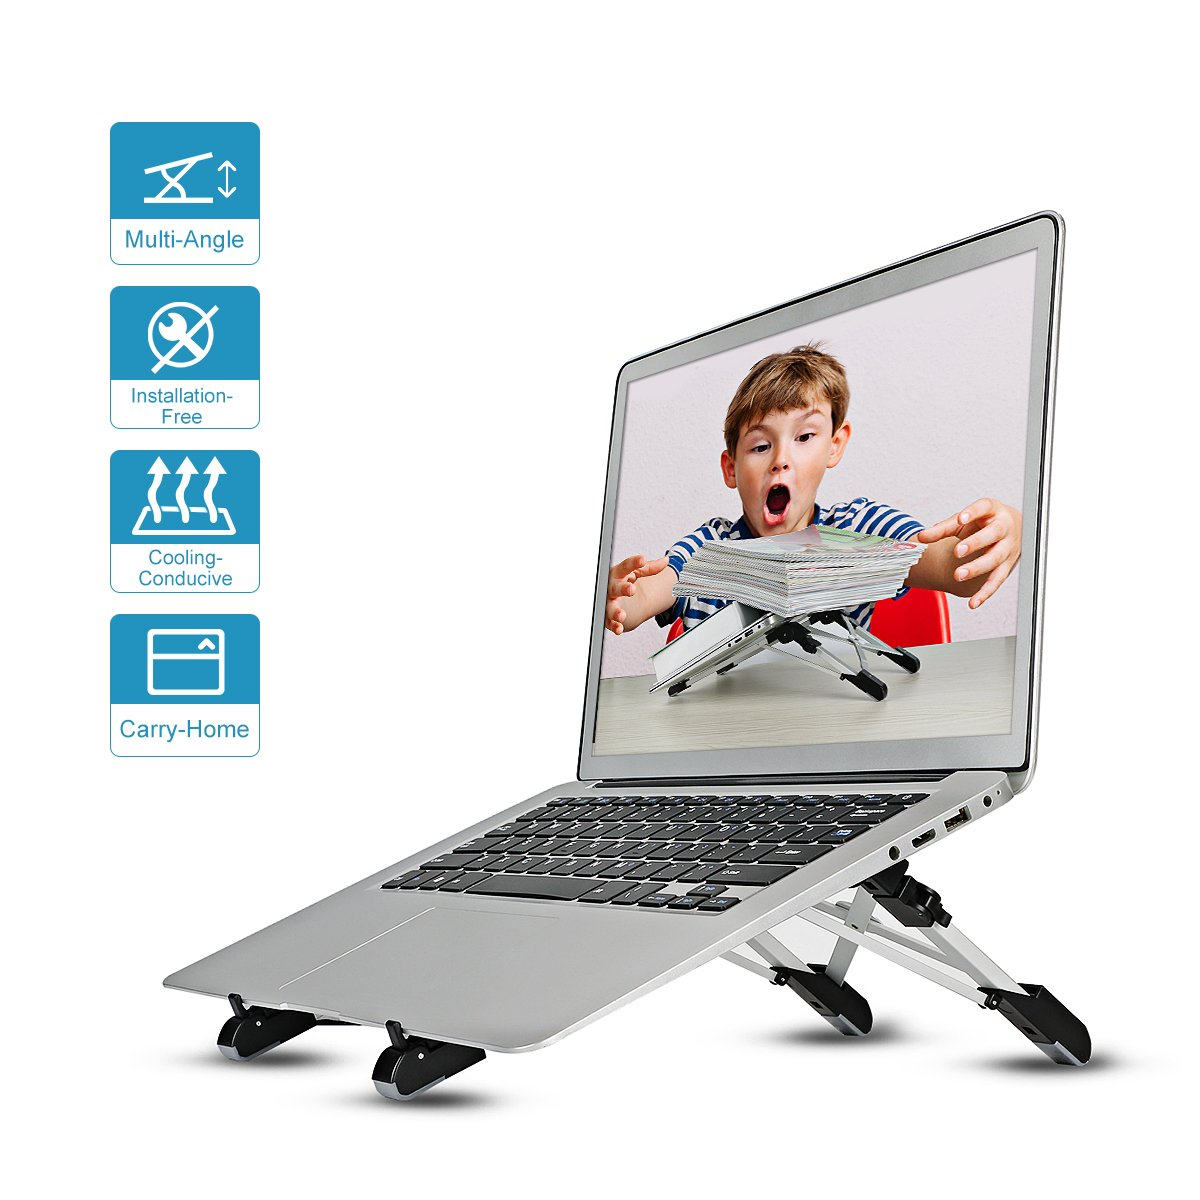 Laptop Stand Adjustable Folding Portable Stand Ergonomic Holder Aluminum Compatible with iPad Tablet(Silver) Megainvo Factory LPS003